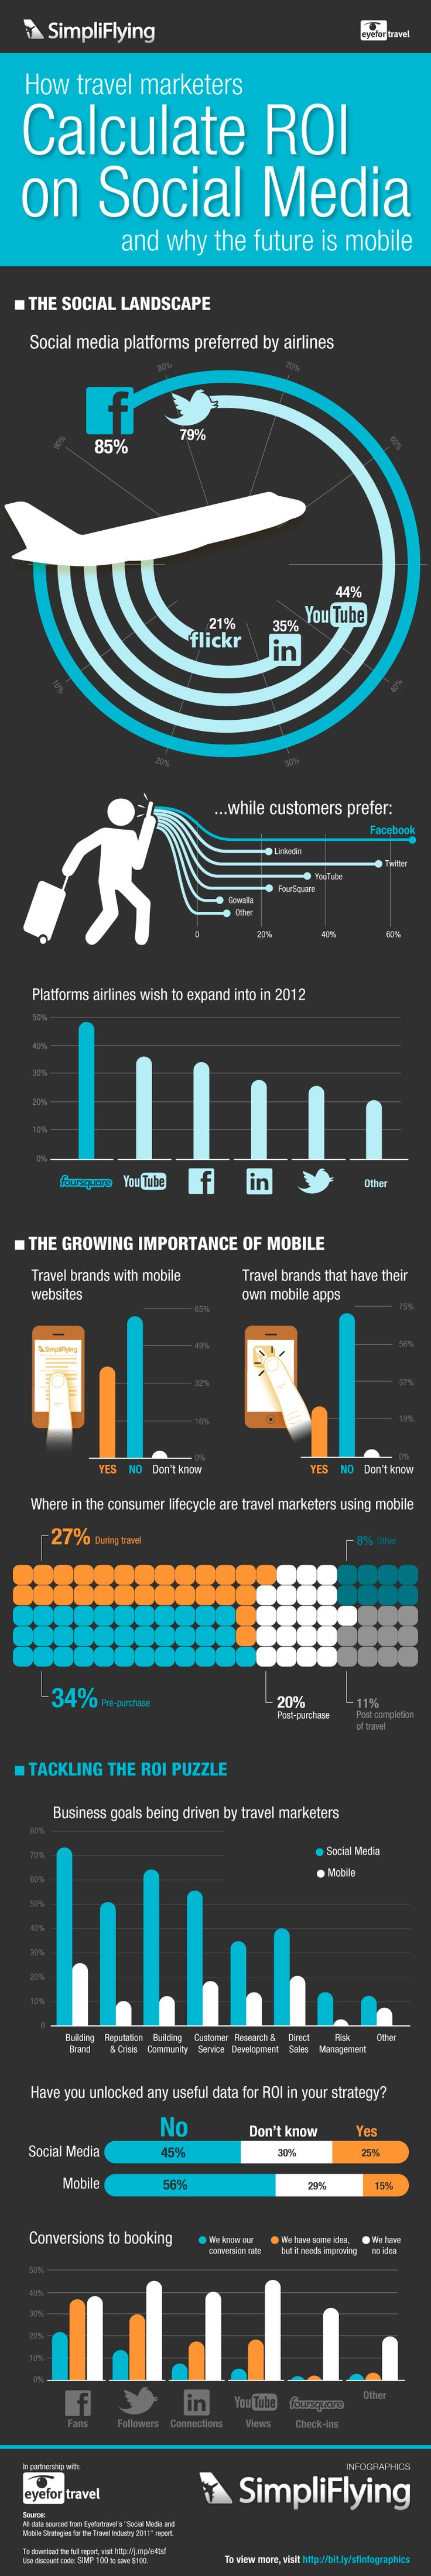 How travel marketers calculate ROI on Social Media #infographic